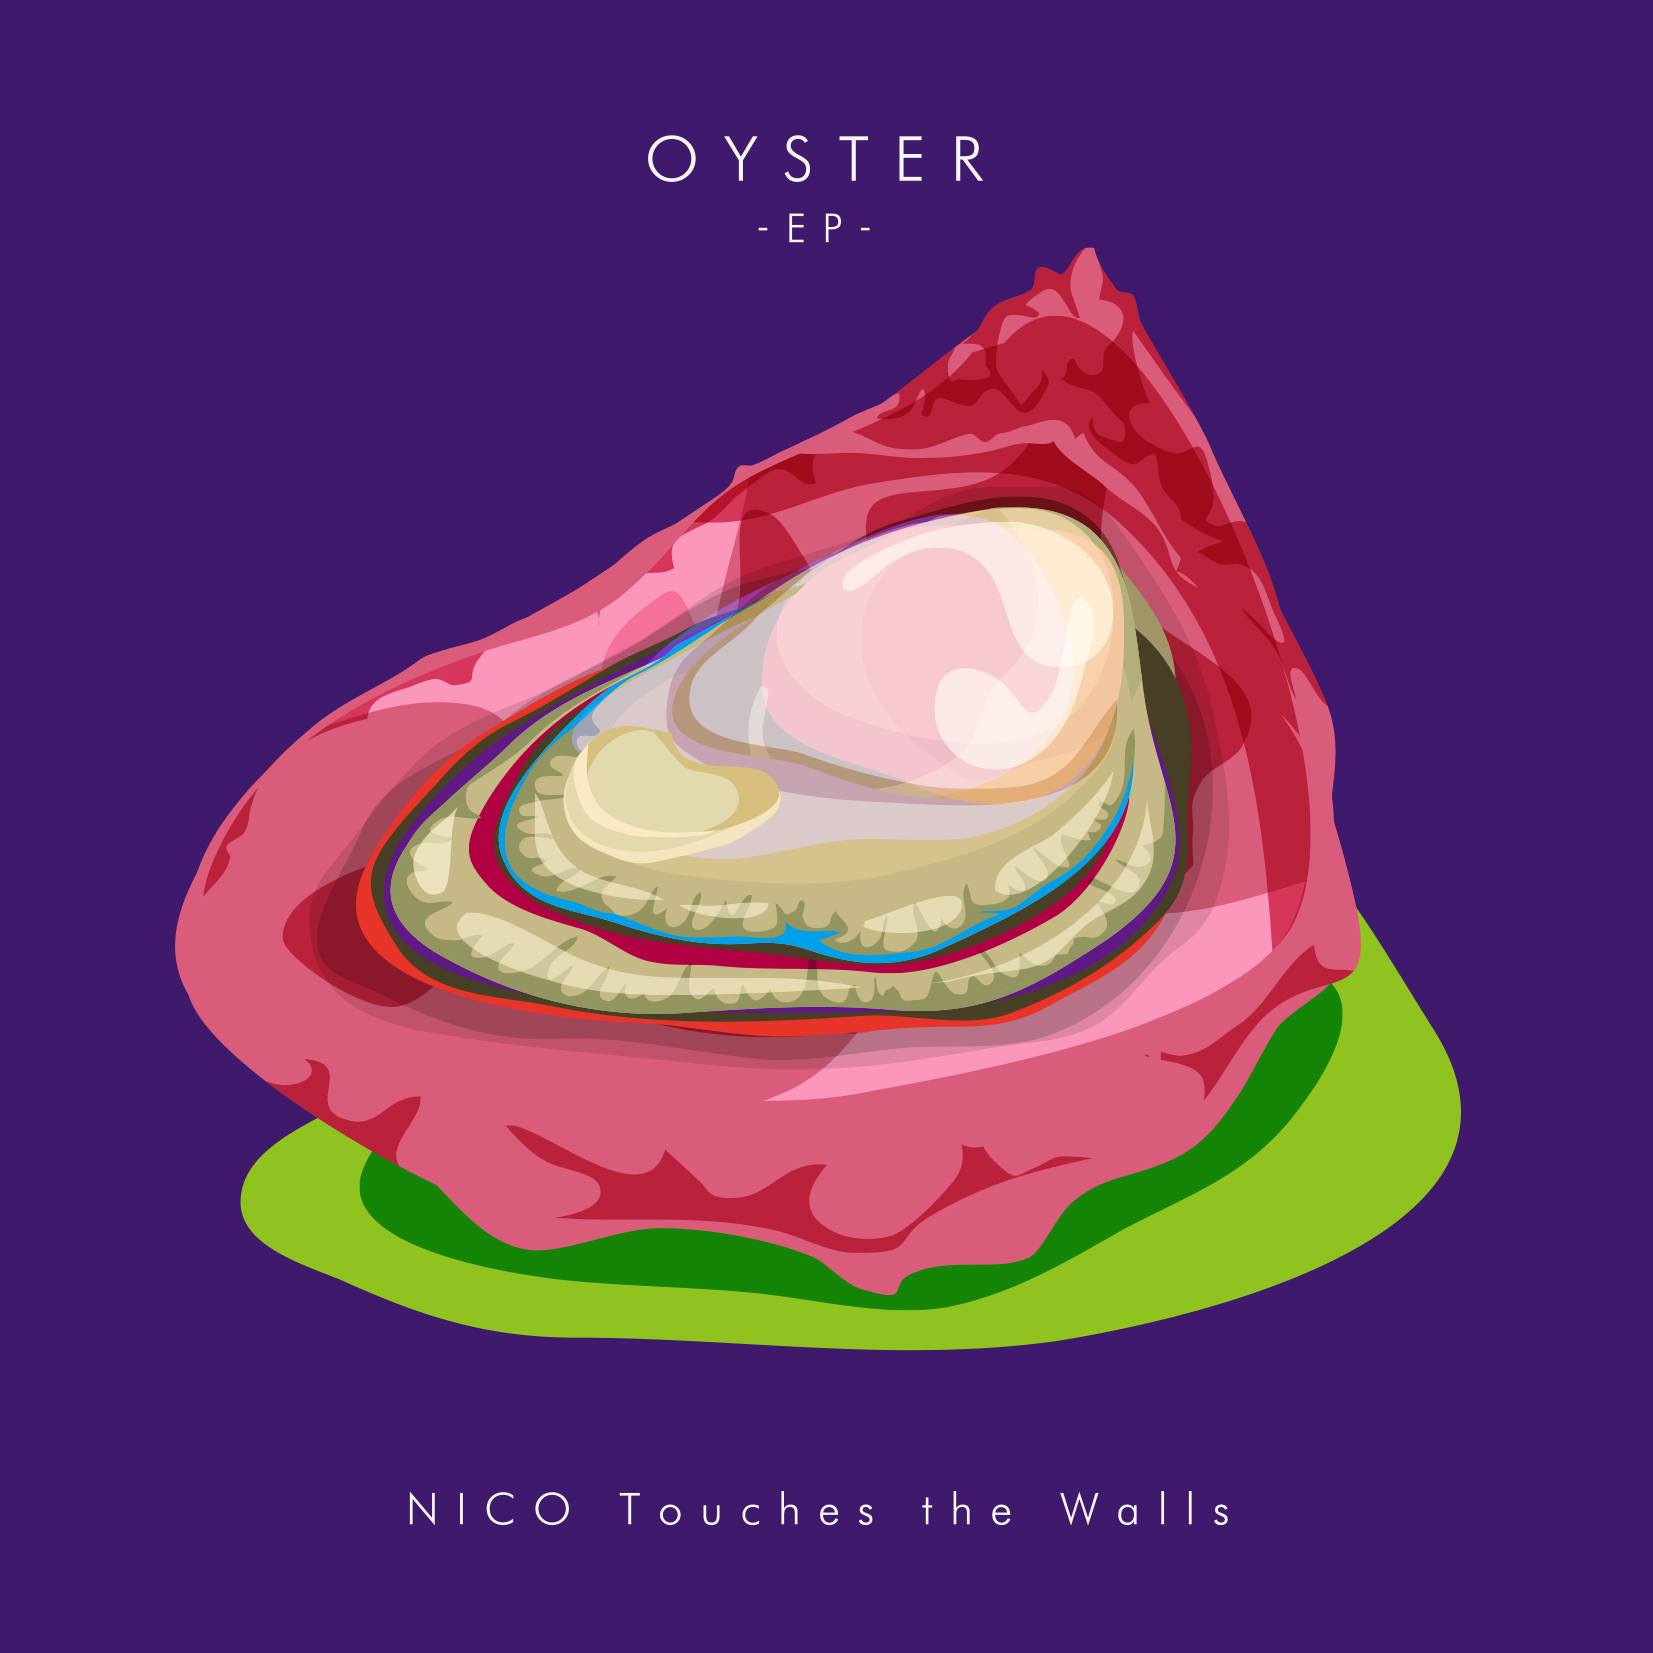 NICO Touches the Walls『OYSTER -EP-』